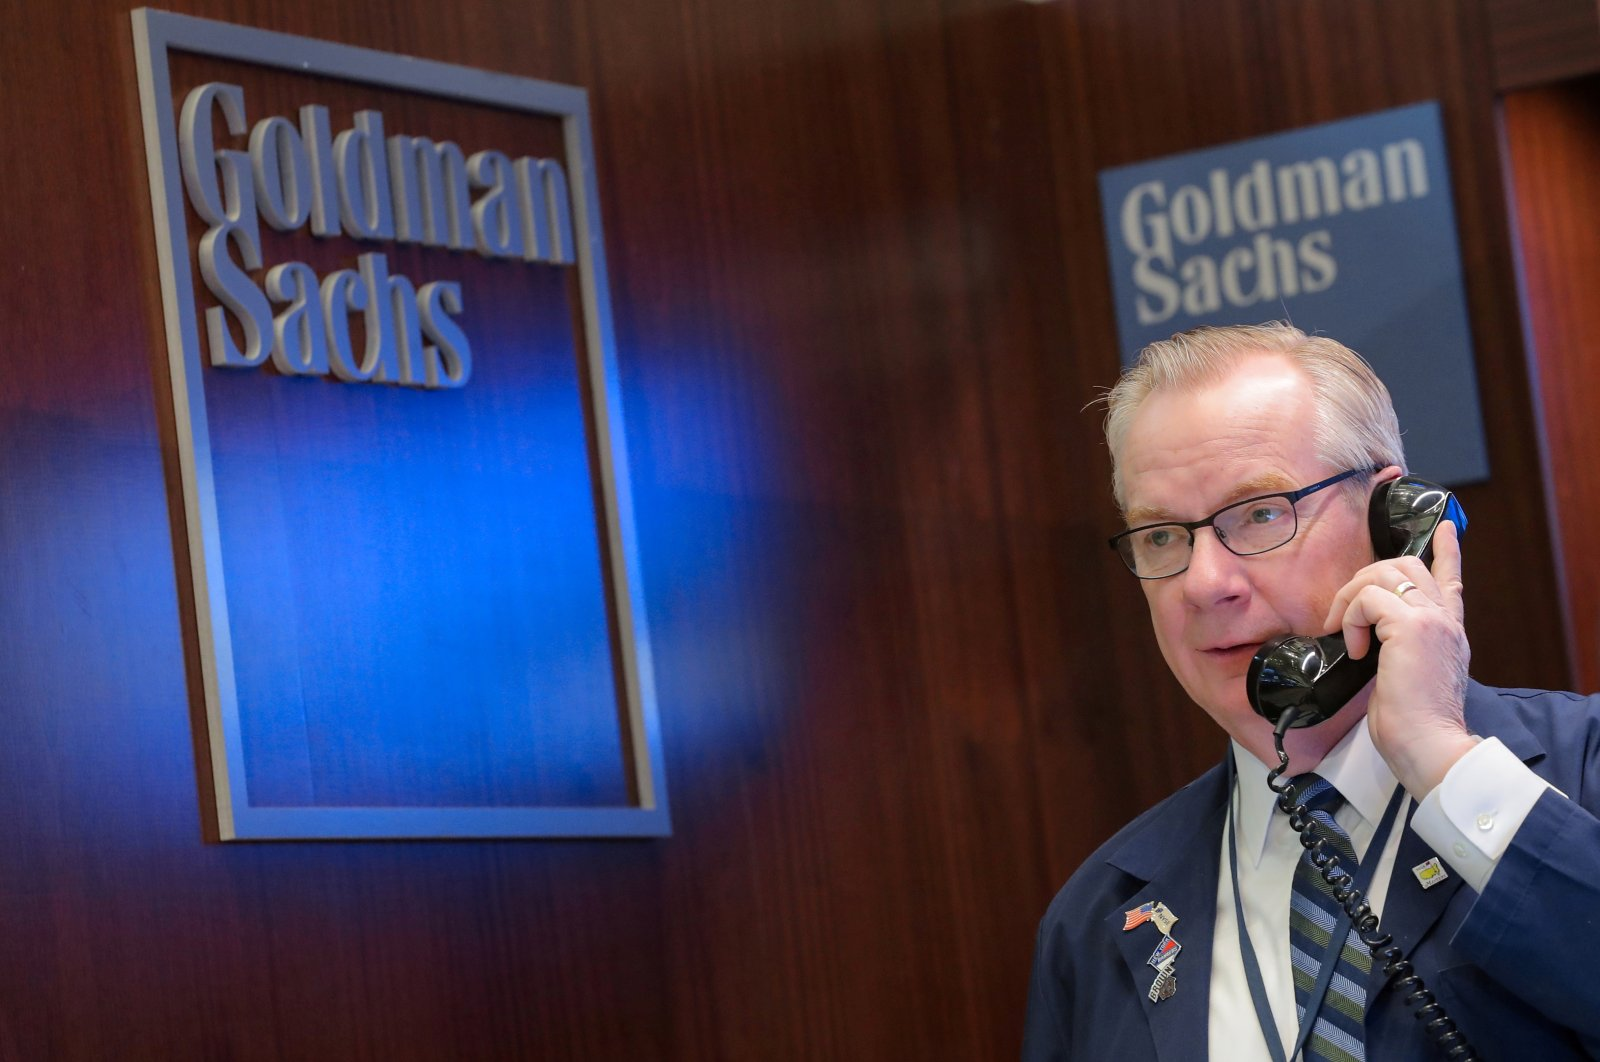 A trader works inside the Goldman Sachs booth on the floor of the New York Stock Exchange (NYSE) in New York, U.S., March 7, 2019. (Reuters Photo)